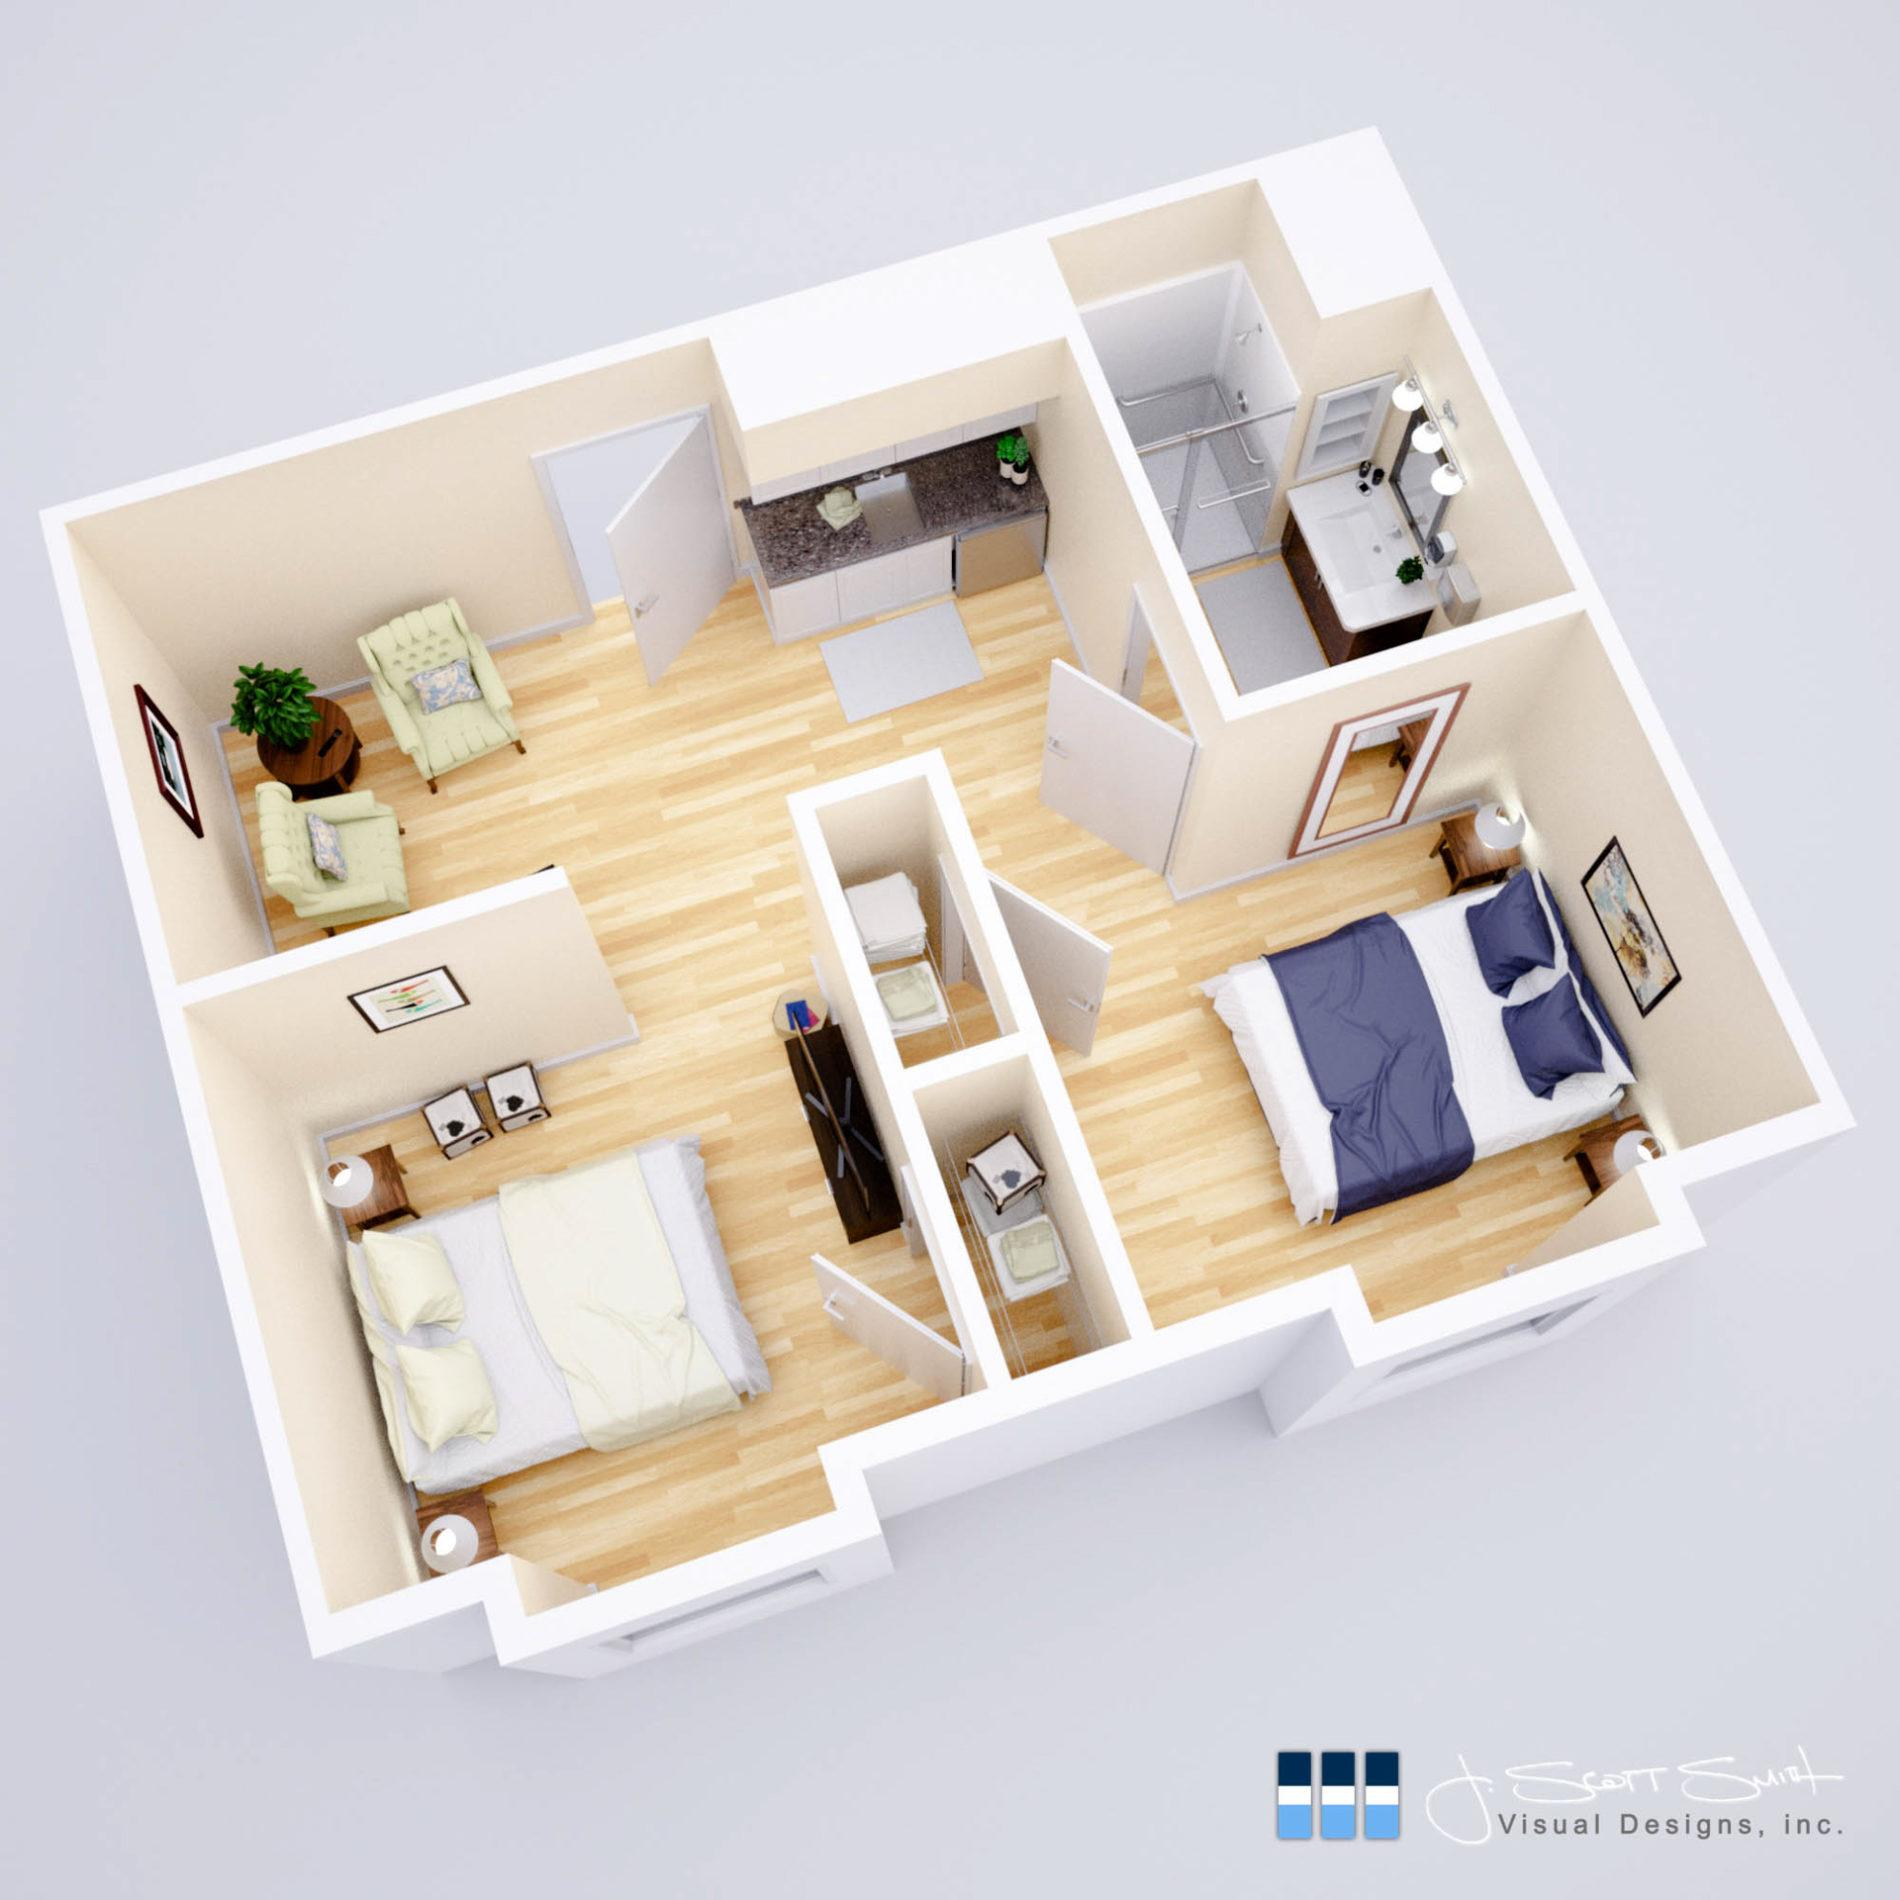 18-011 - v08 (2 bedroom unit)_LR_WEB